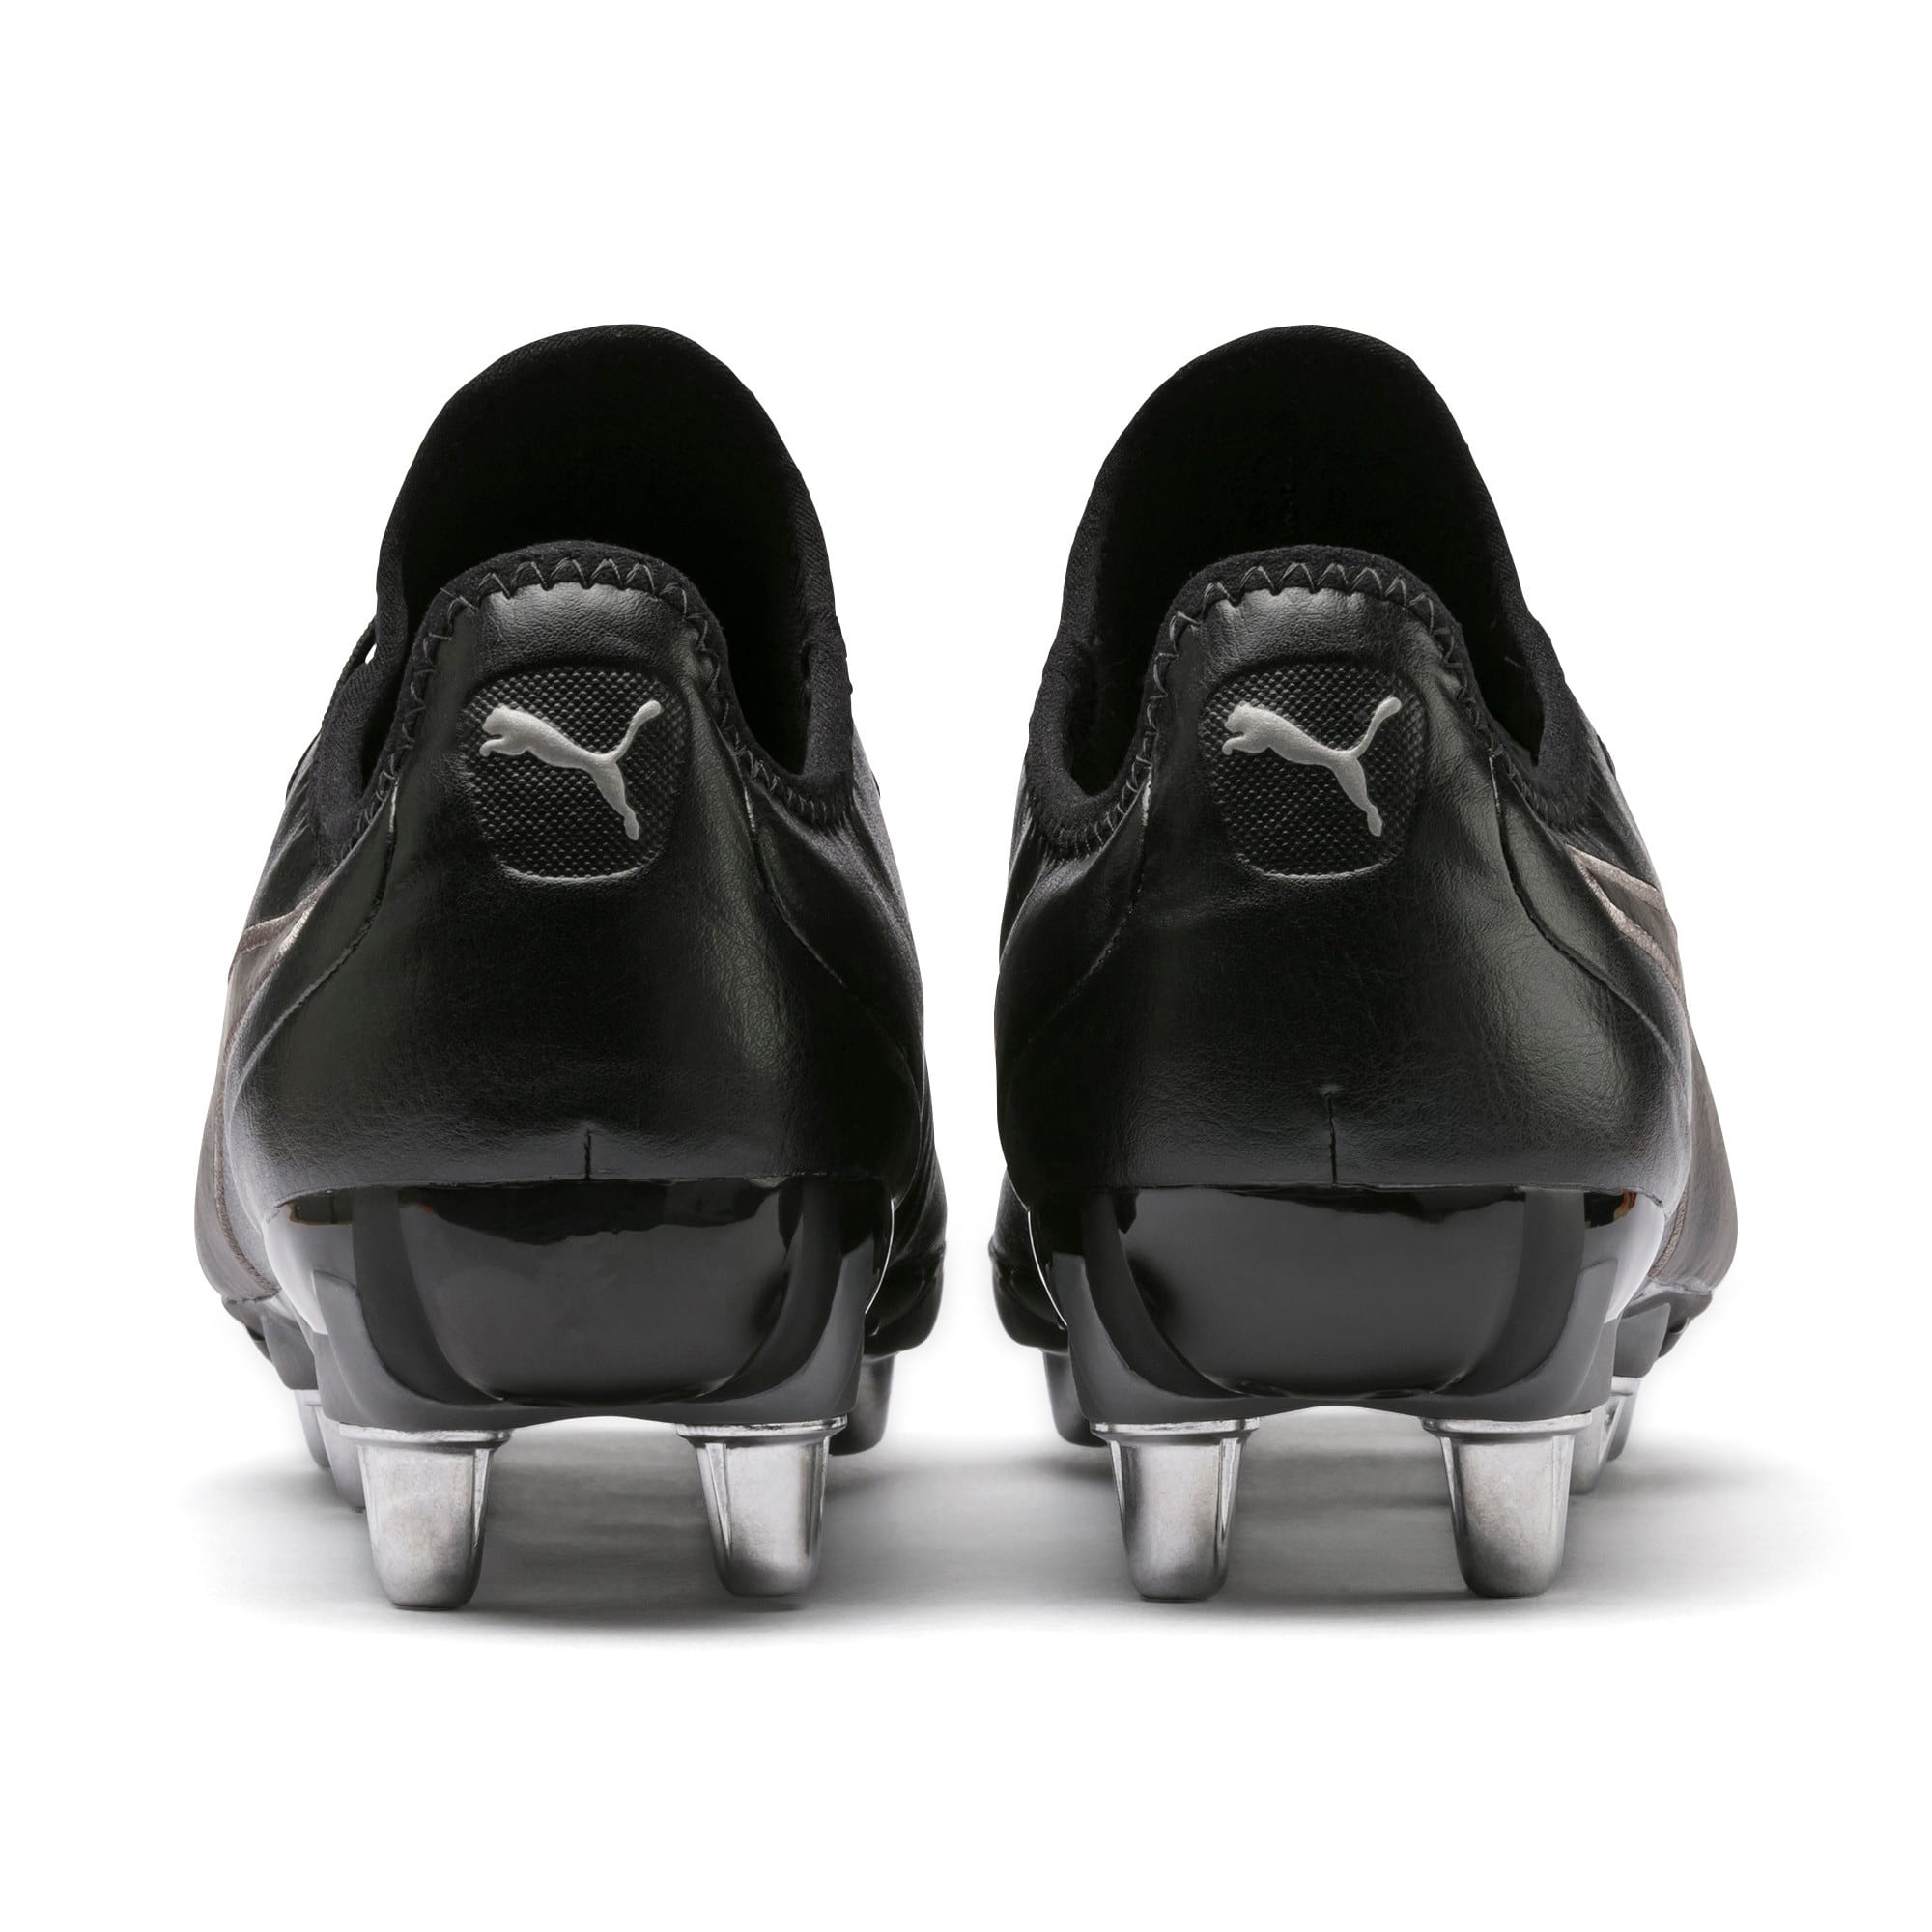 Thumbnail 3 of KING Pro H8 Men's Rugby Boots, Puma Black-Puma Aged Silver, medium